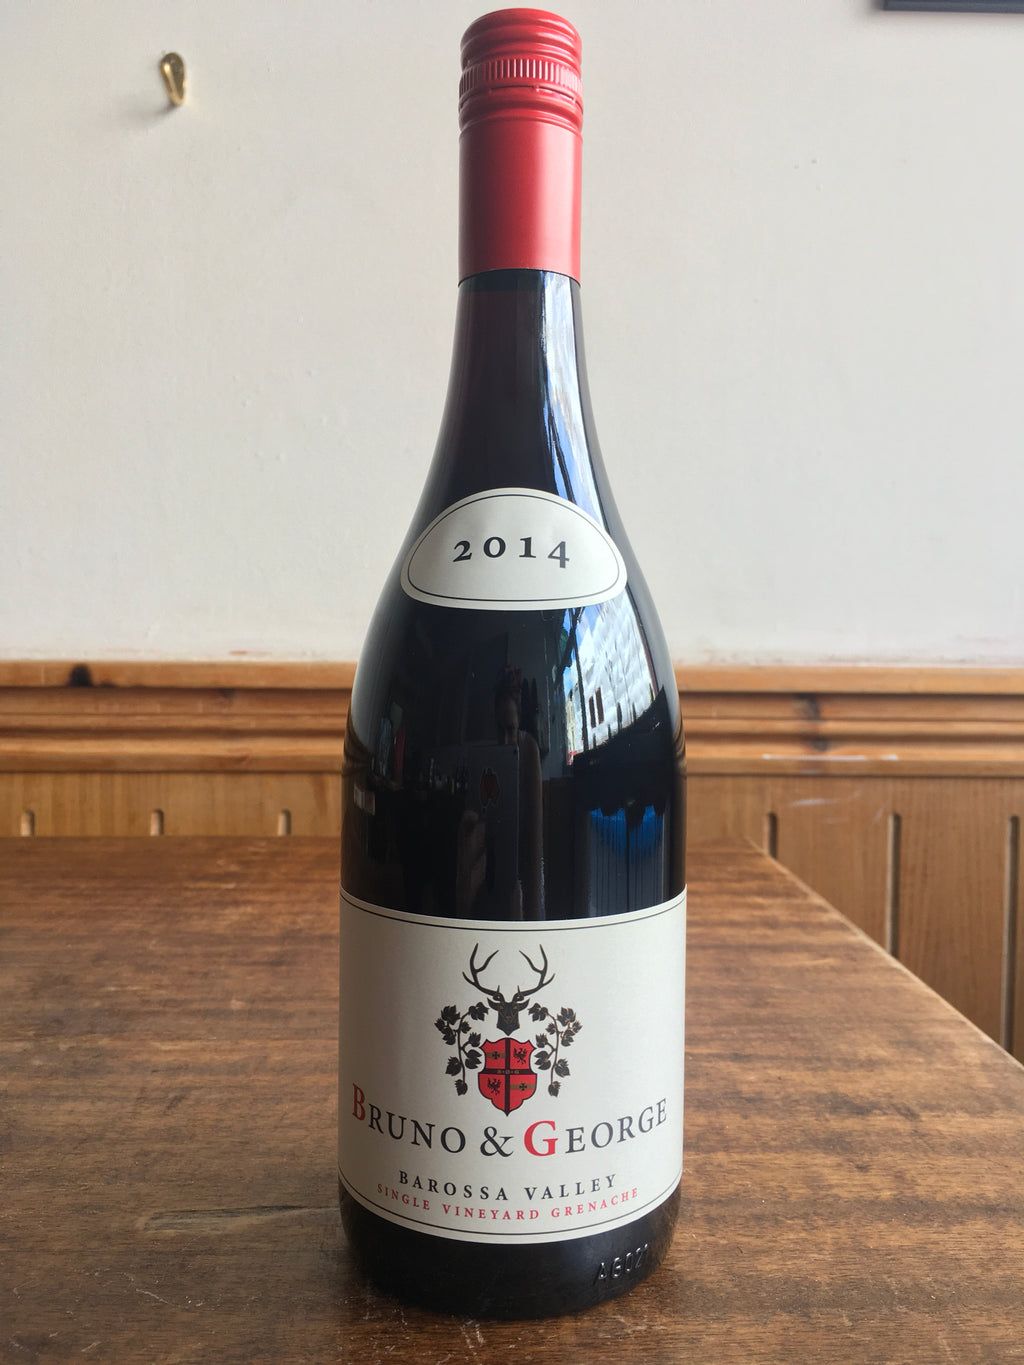 Bruno & George Single Vineyard Grenache, 2014